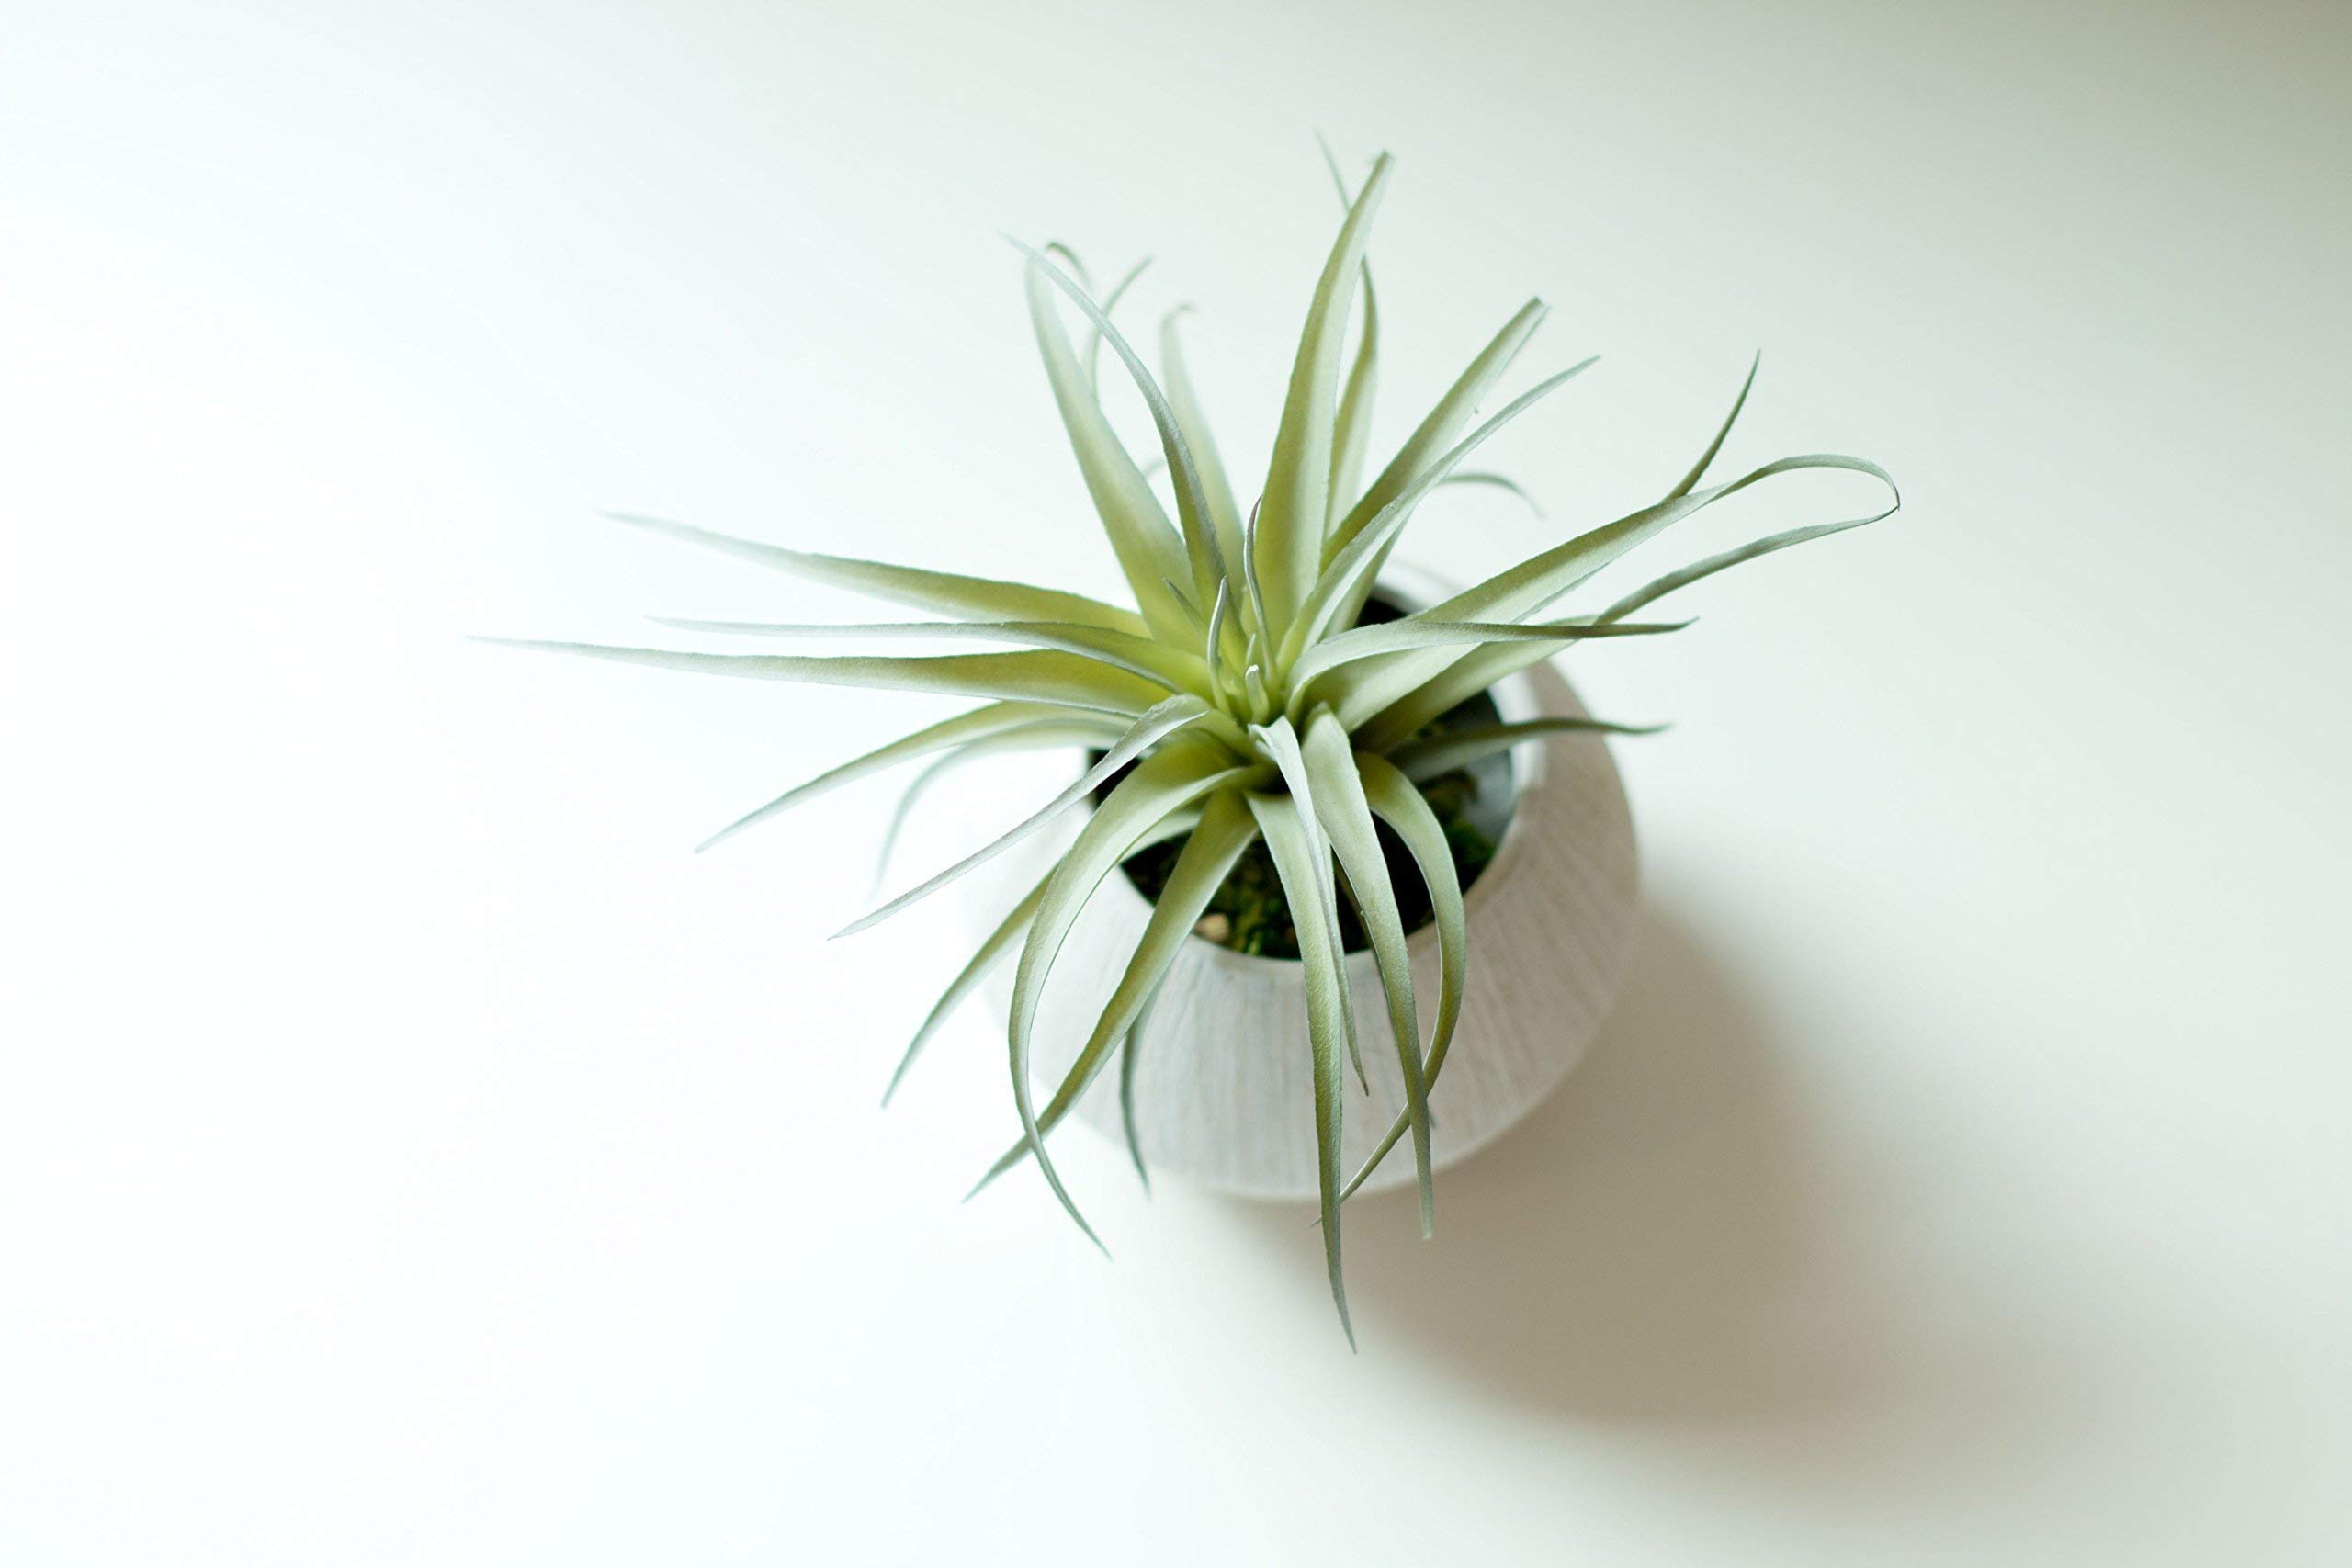 Small Faux Air Plant in Textured White Ceramic Planter - 6 x 6 Inches - Marmalade Decor Potted Artificial Tillandsia Plant in Etched, Lined Clay Pot - Global Modern Decor for Home or Office